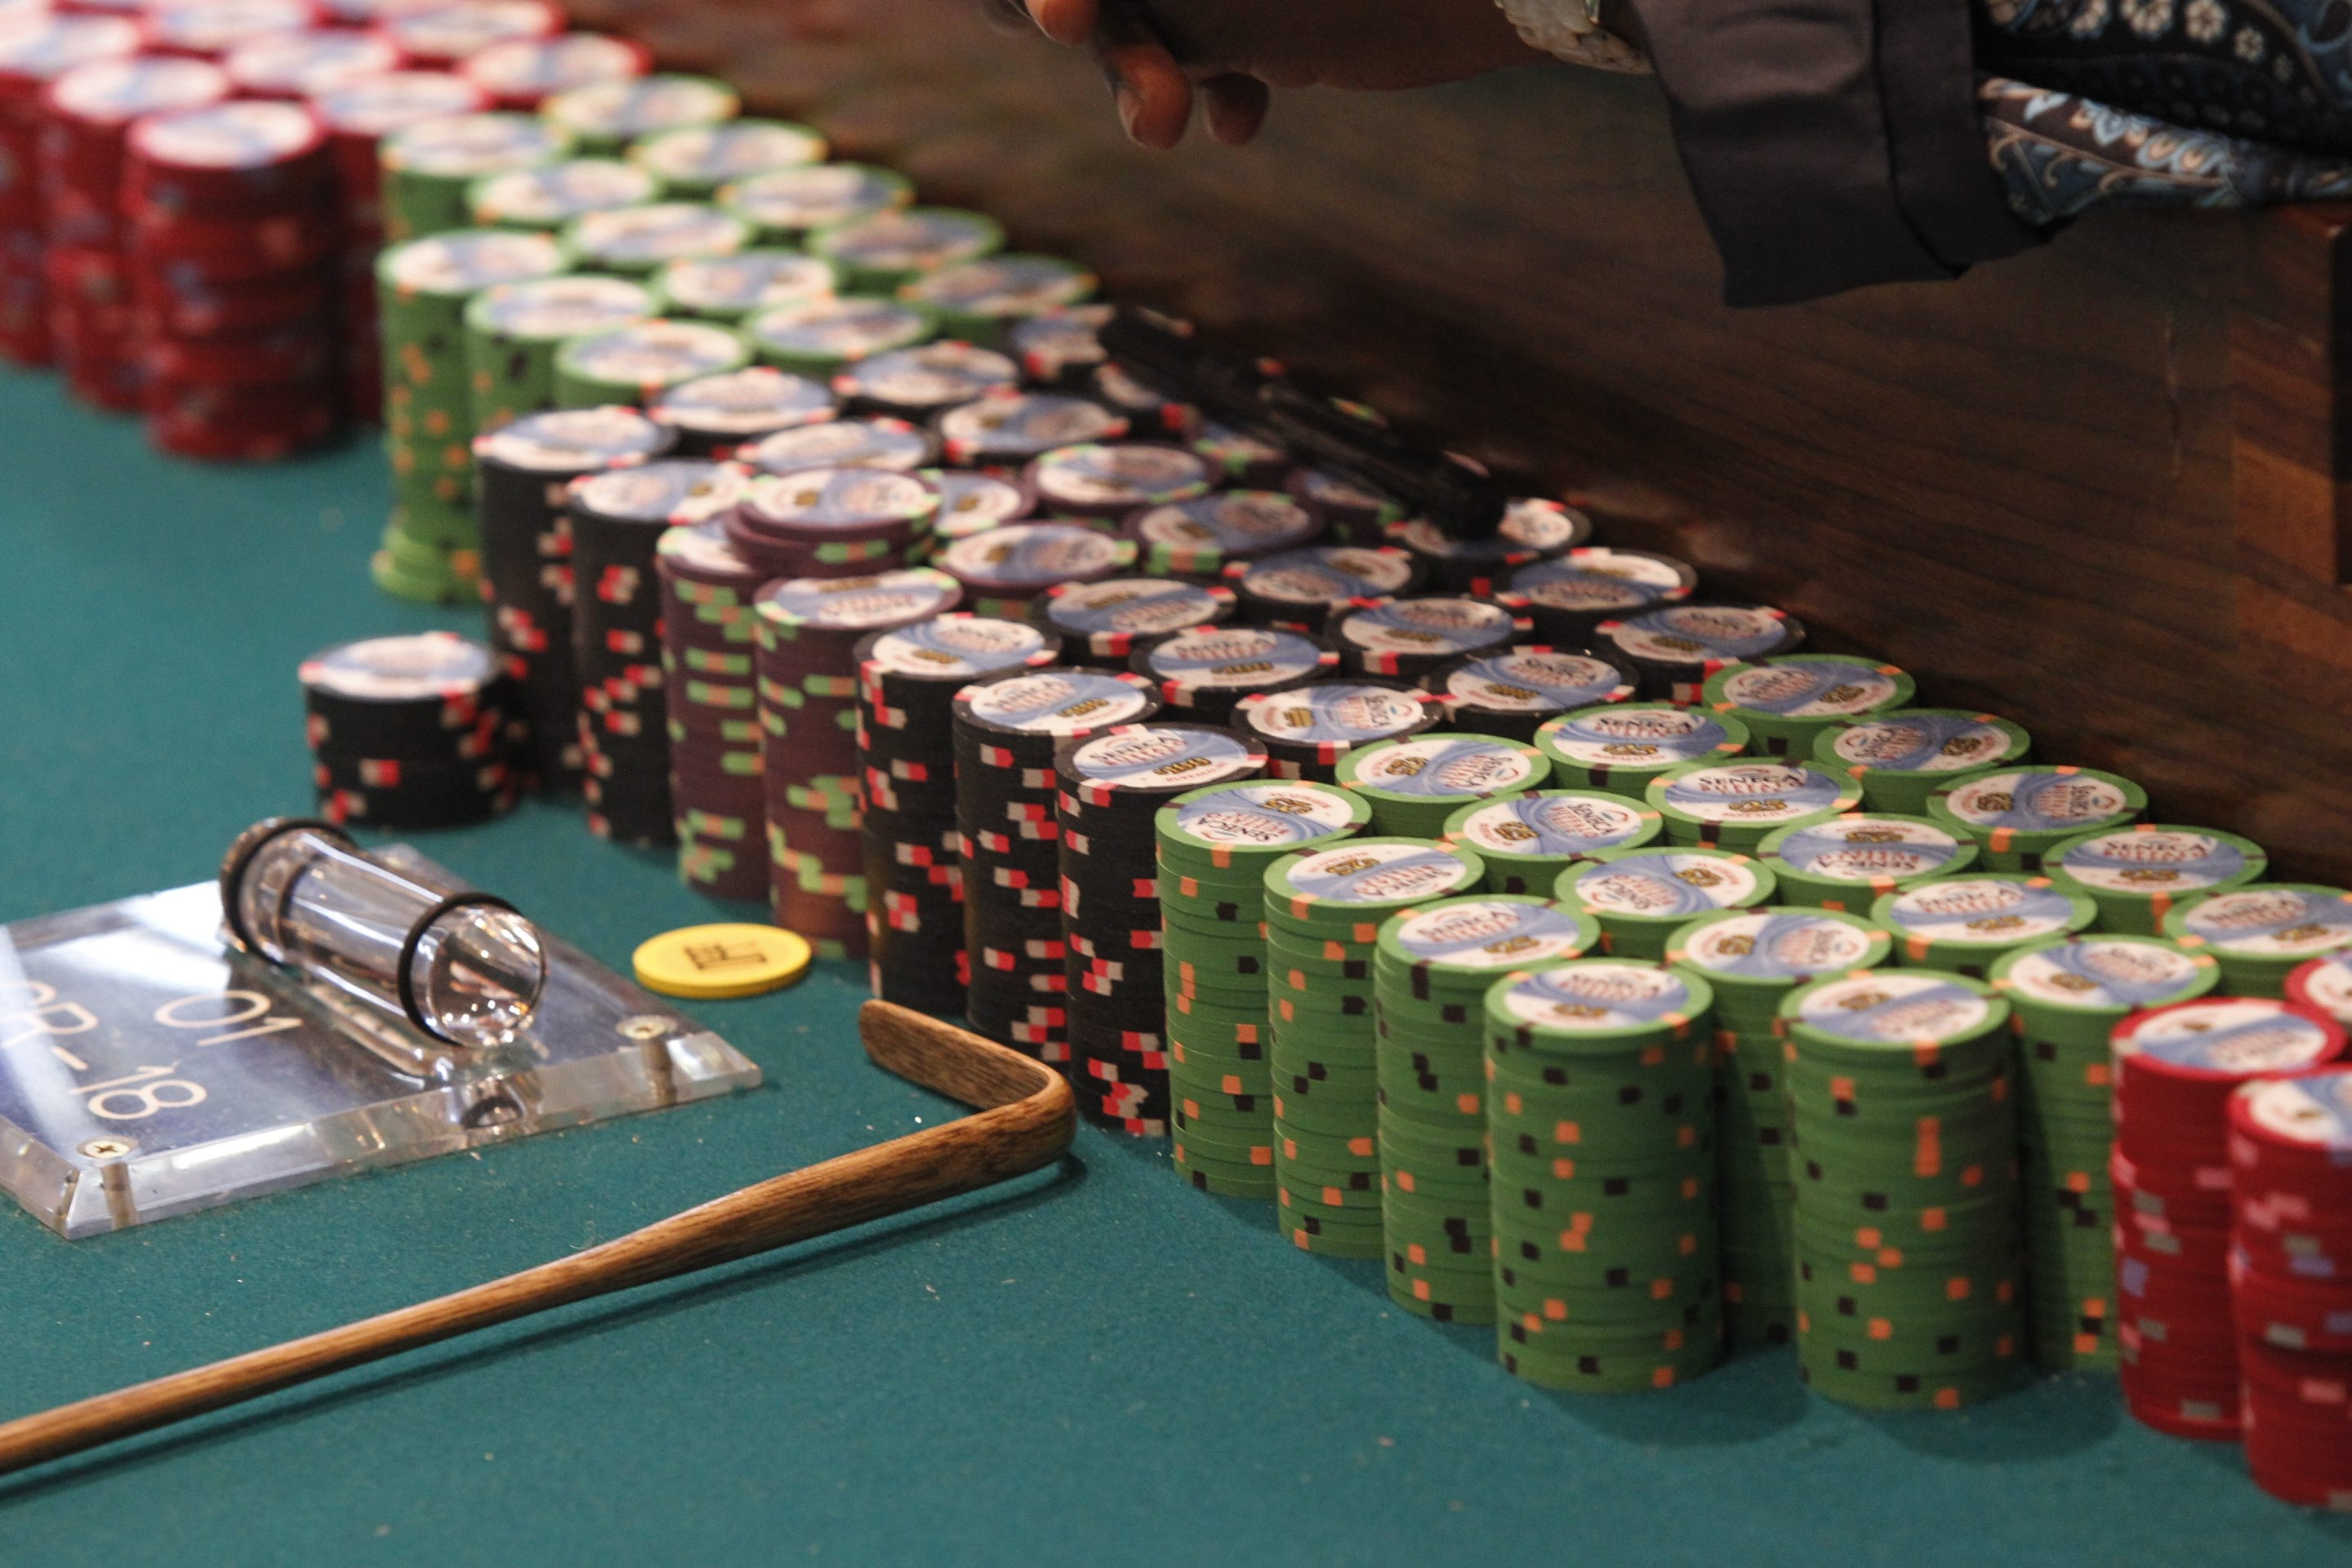 The Seneca Nation has failed to live up to some of the most critical aspects of the agreement it made with the City of Buffalo in its deal to build the Seneca Buffalo Creek Casino in the First Ward.